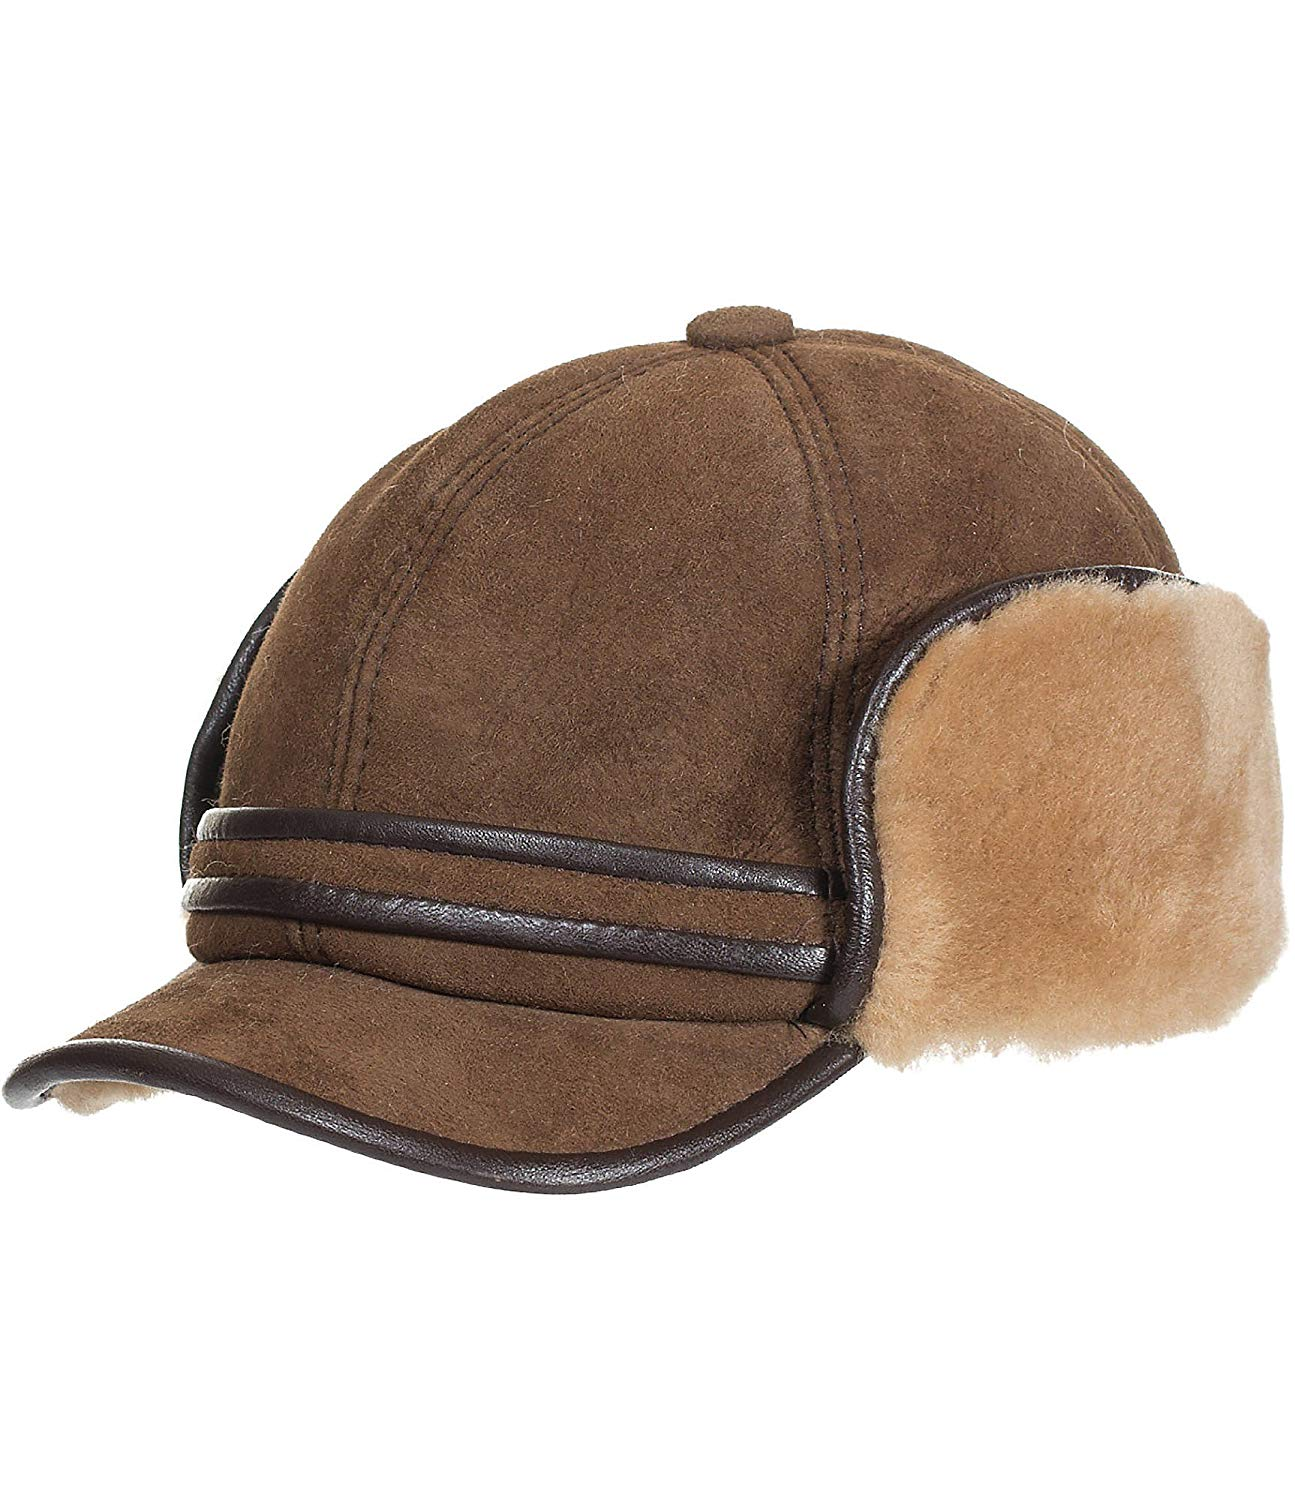 555a043b480 Get Quotations · Shearling Sheepskin Cadet Cap with Snap Flaps